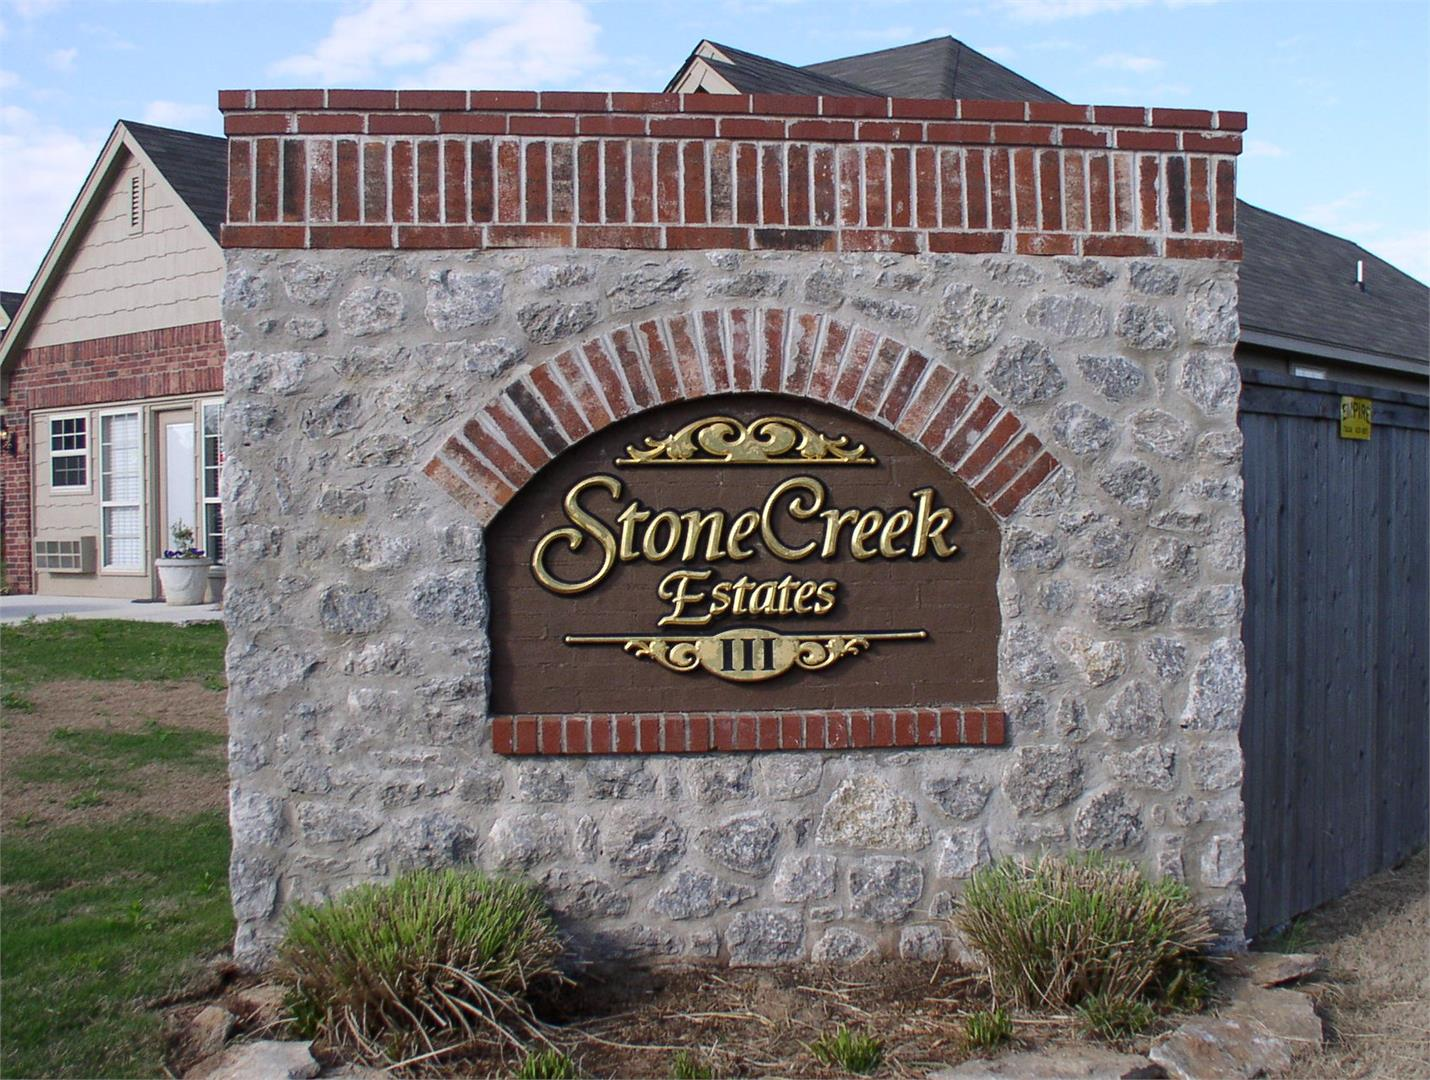 - Welcome home to Stone Creek Estates III where all of Tulsa is within easy reach. Located just 10 minutes from Tulsa Hills and 15 minutes from Downtown, Stone Creek Estates III gives you many options from the $170's. Custom floor plans are made to fit your desire for comfortable living at an affordable price. Perfect for growing families or those seeking to escape the rush of the city.